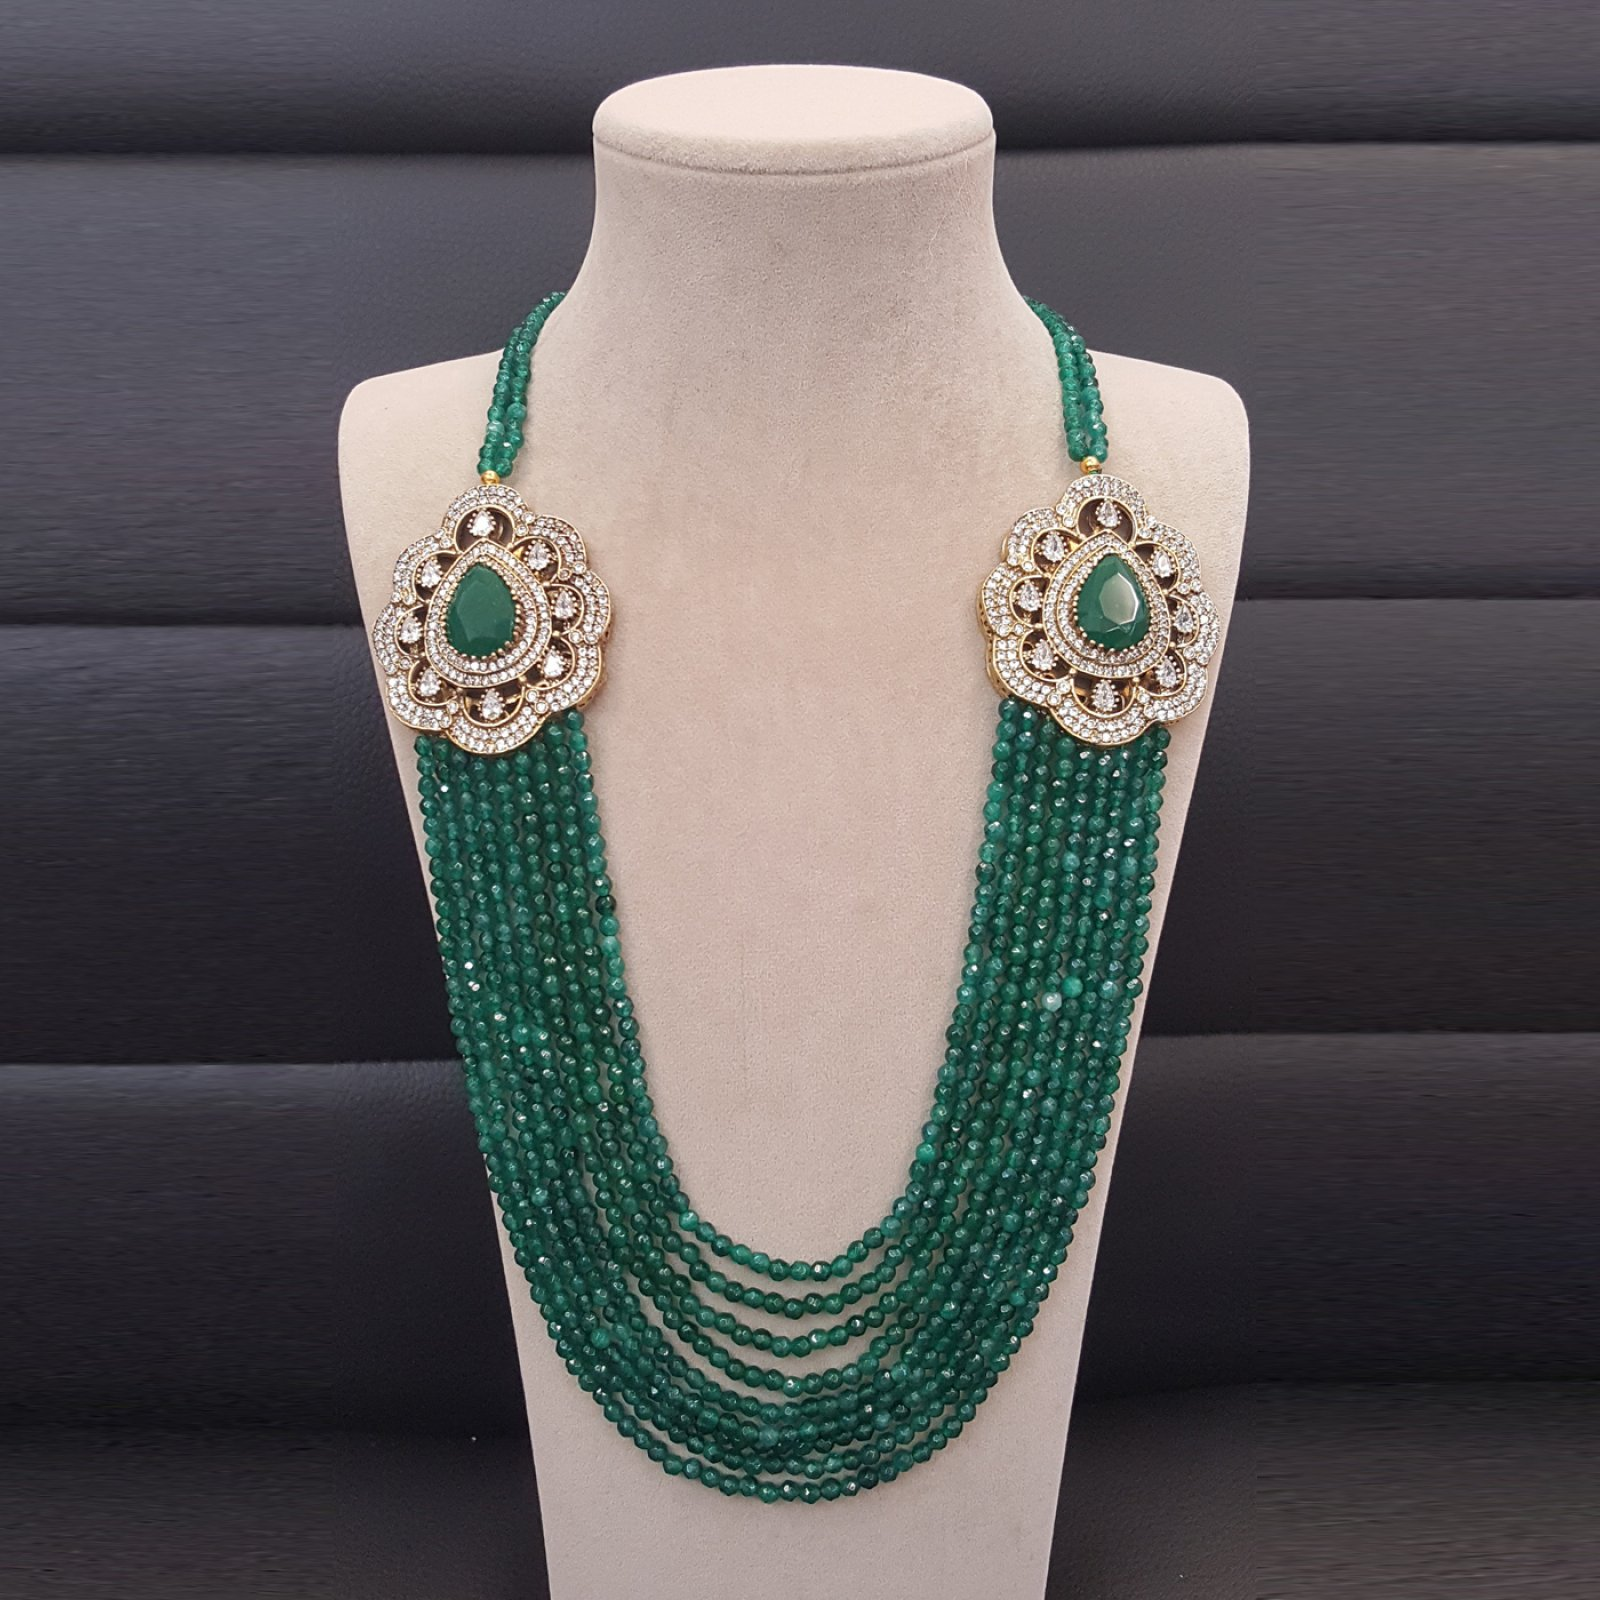 DRN04 - DESIGNER GREEN JADE NECKLACE WITH TWO TURKISH BROOCHES